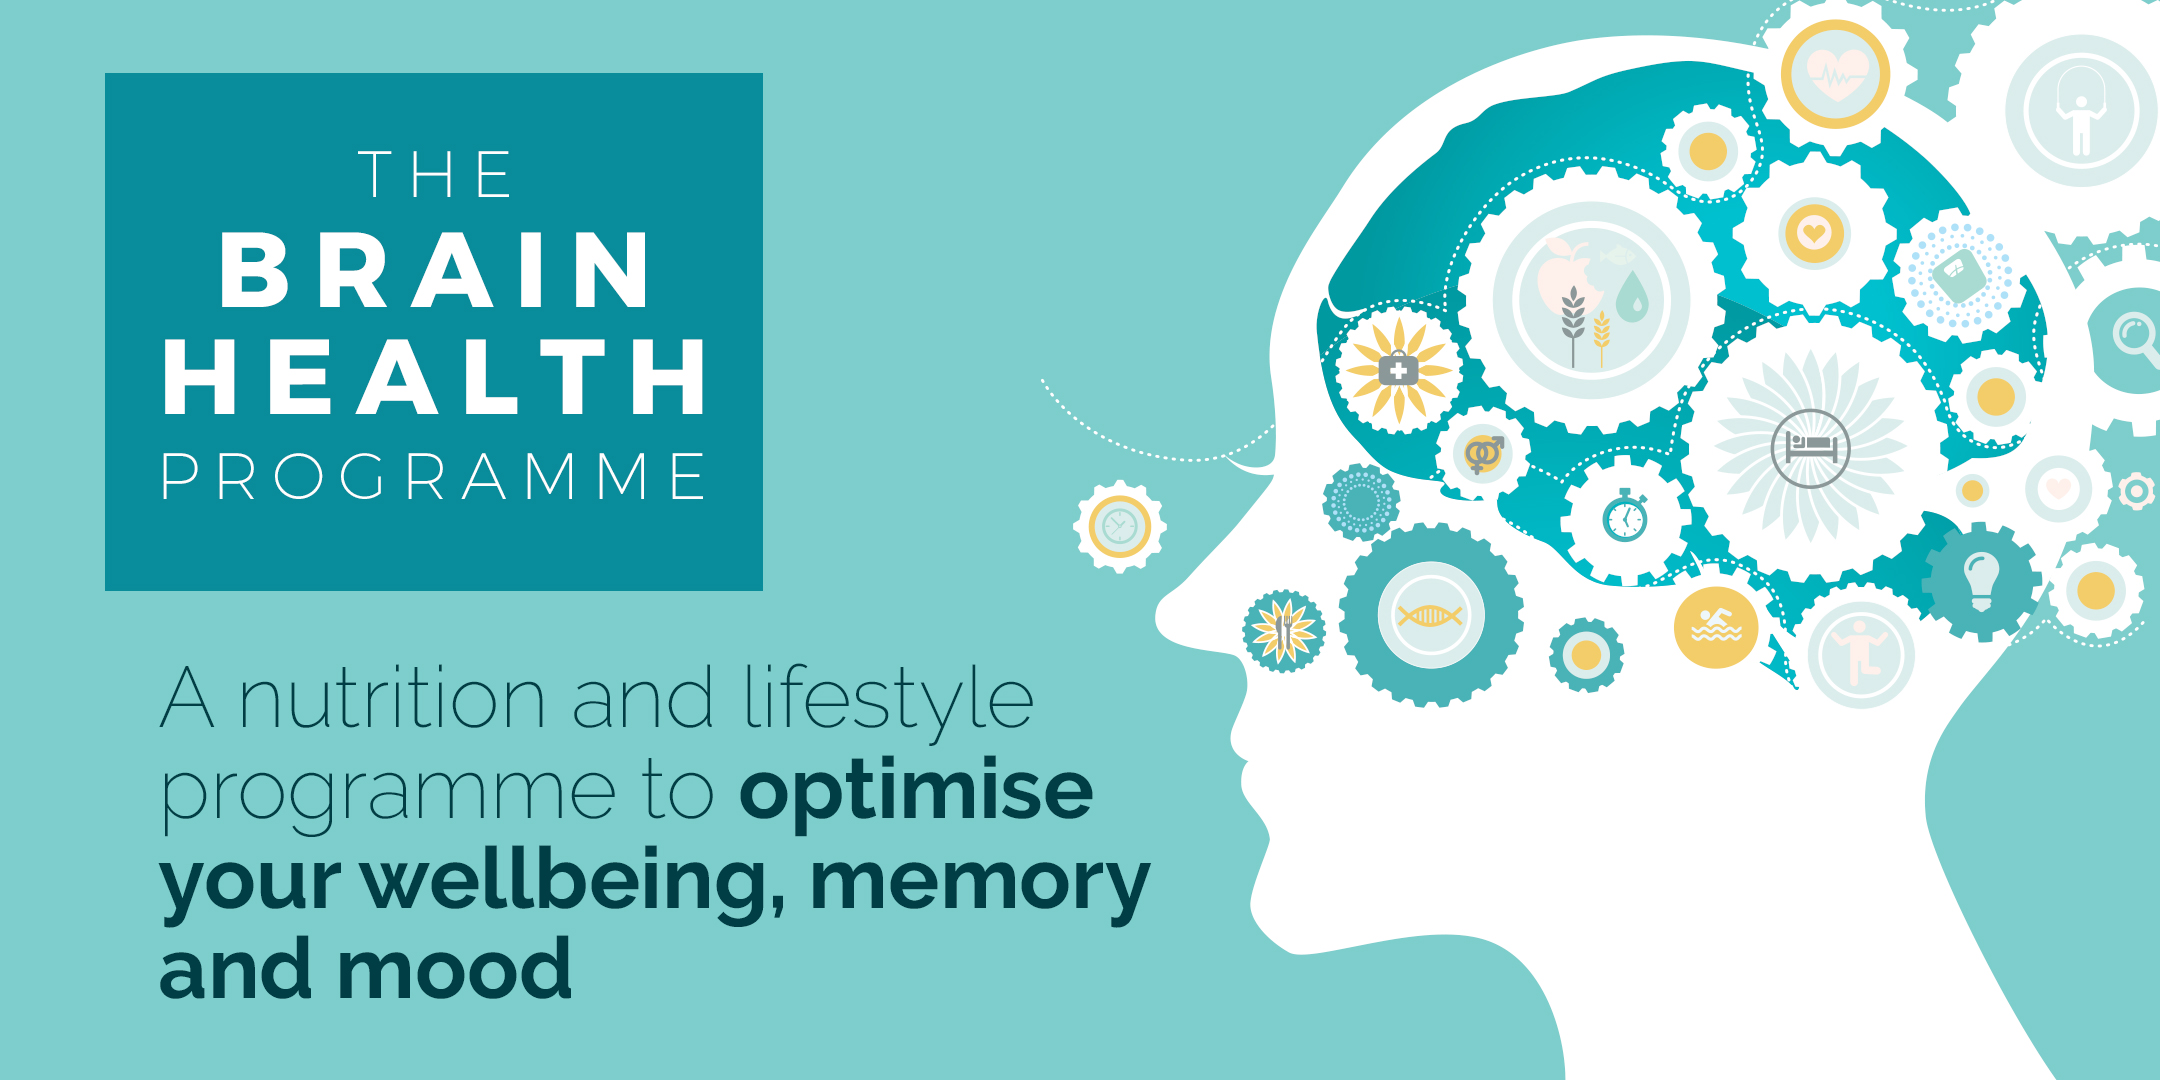 Introduction to the Brain Health Programme